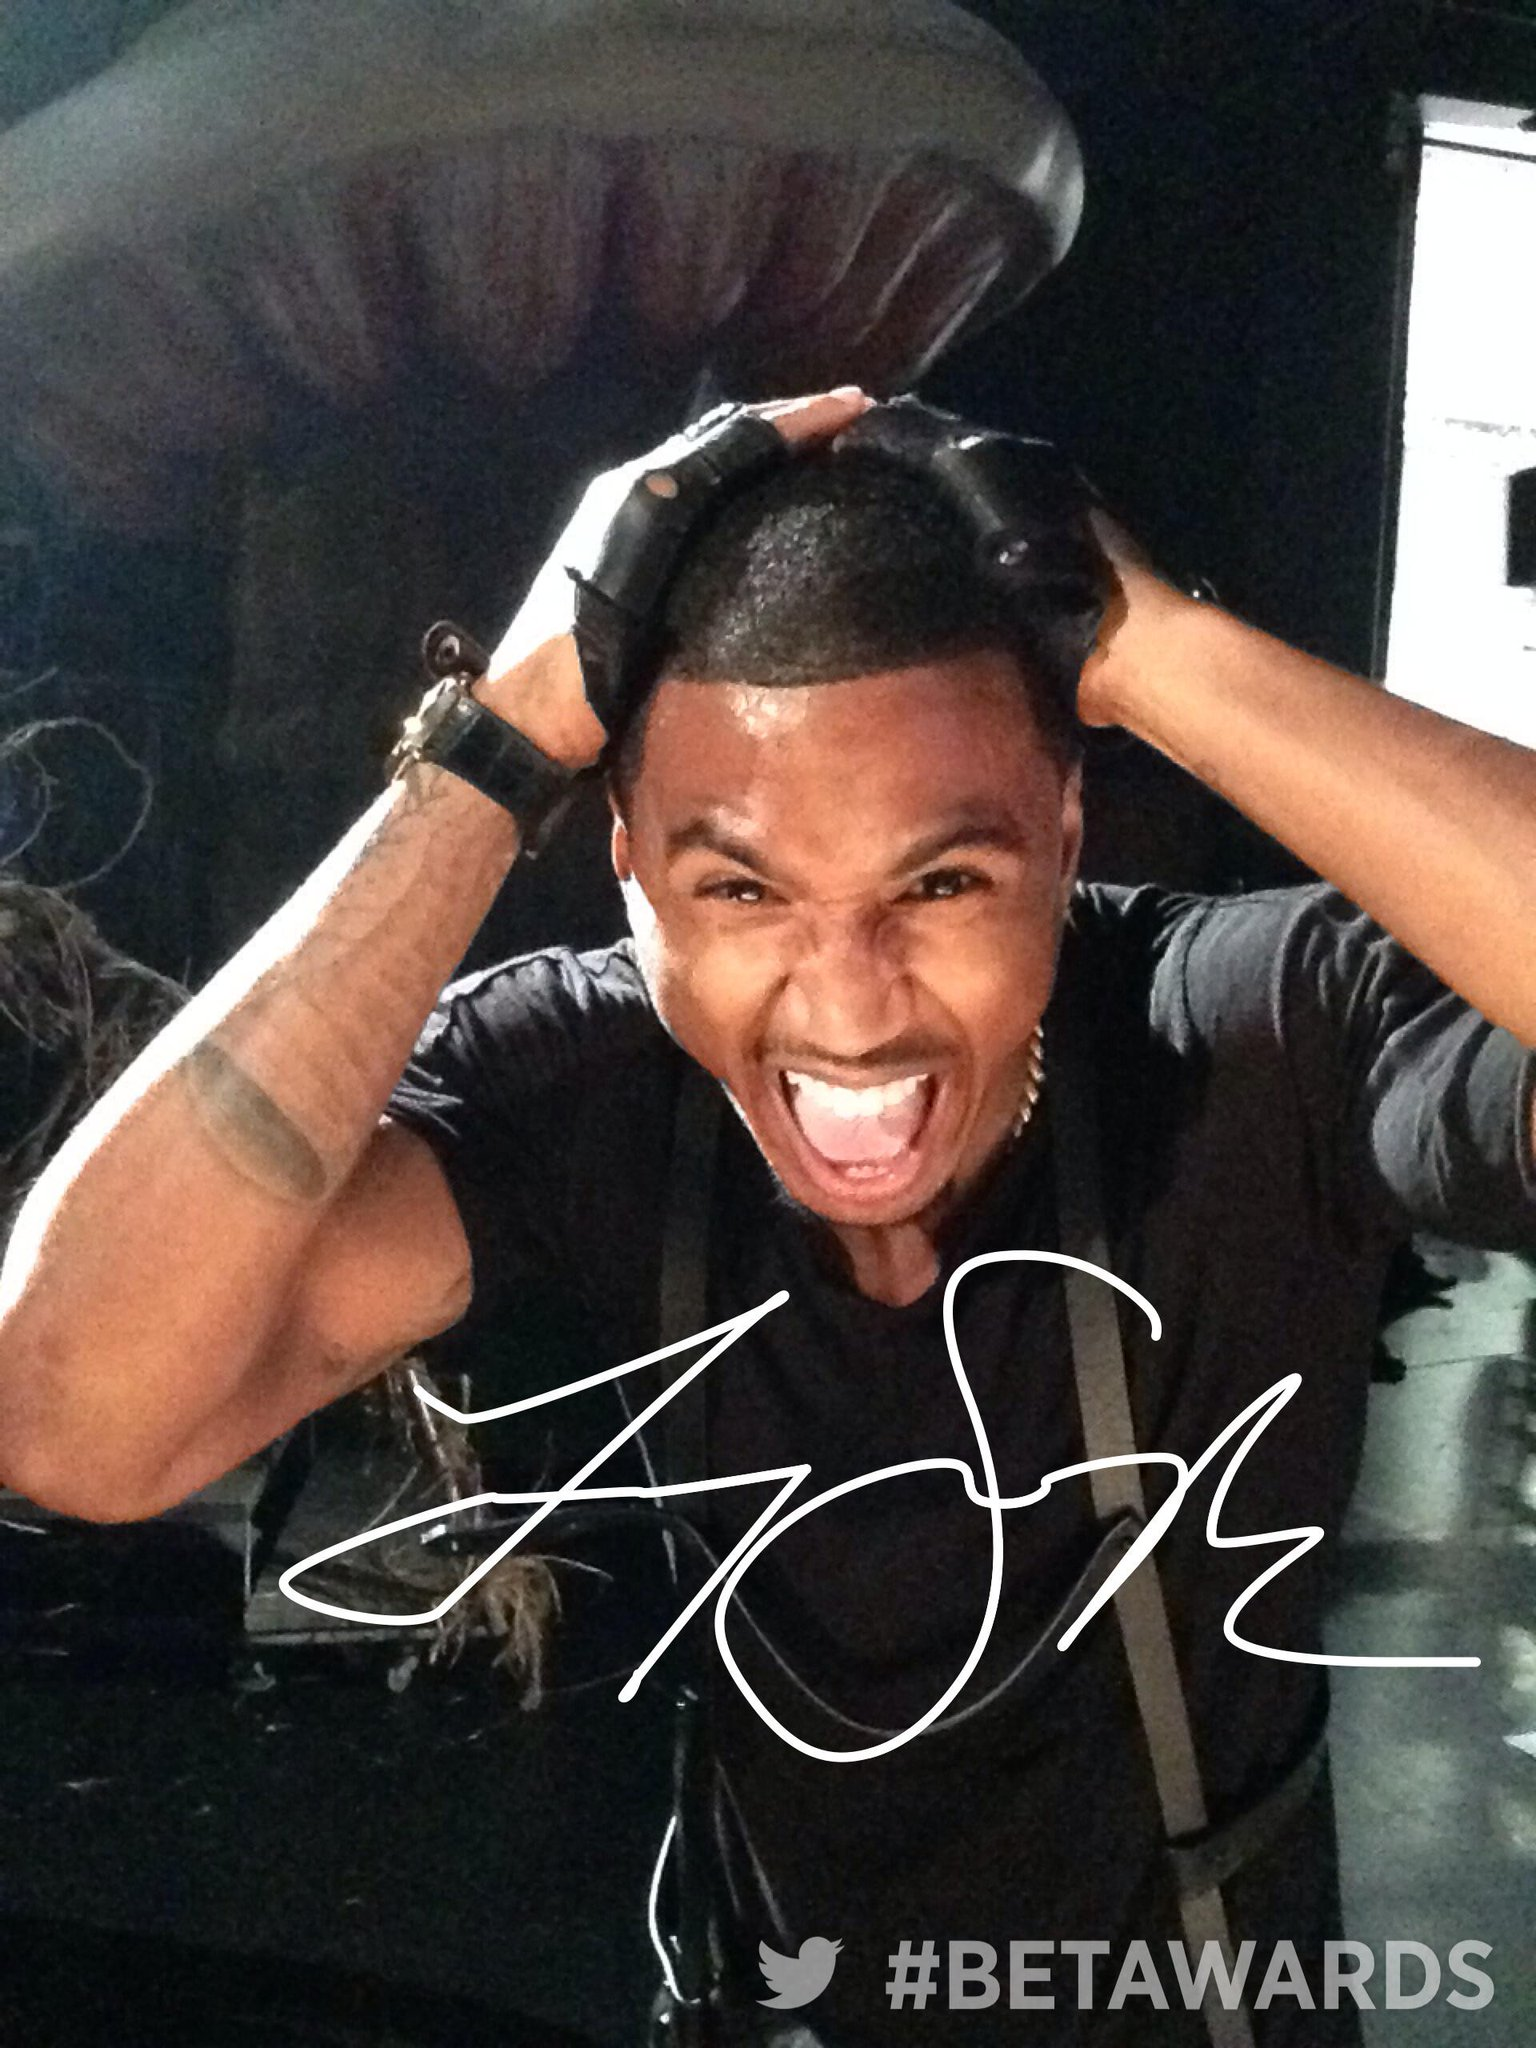 RT @BETAwards: It was so nice to MEET YOU AT #BETAWARDS with @TreySongz http://t.co/9NaehTFeNt